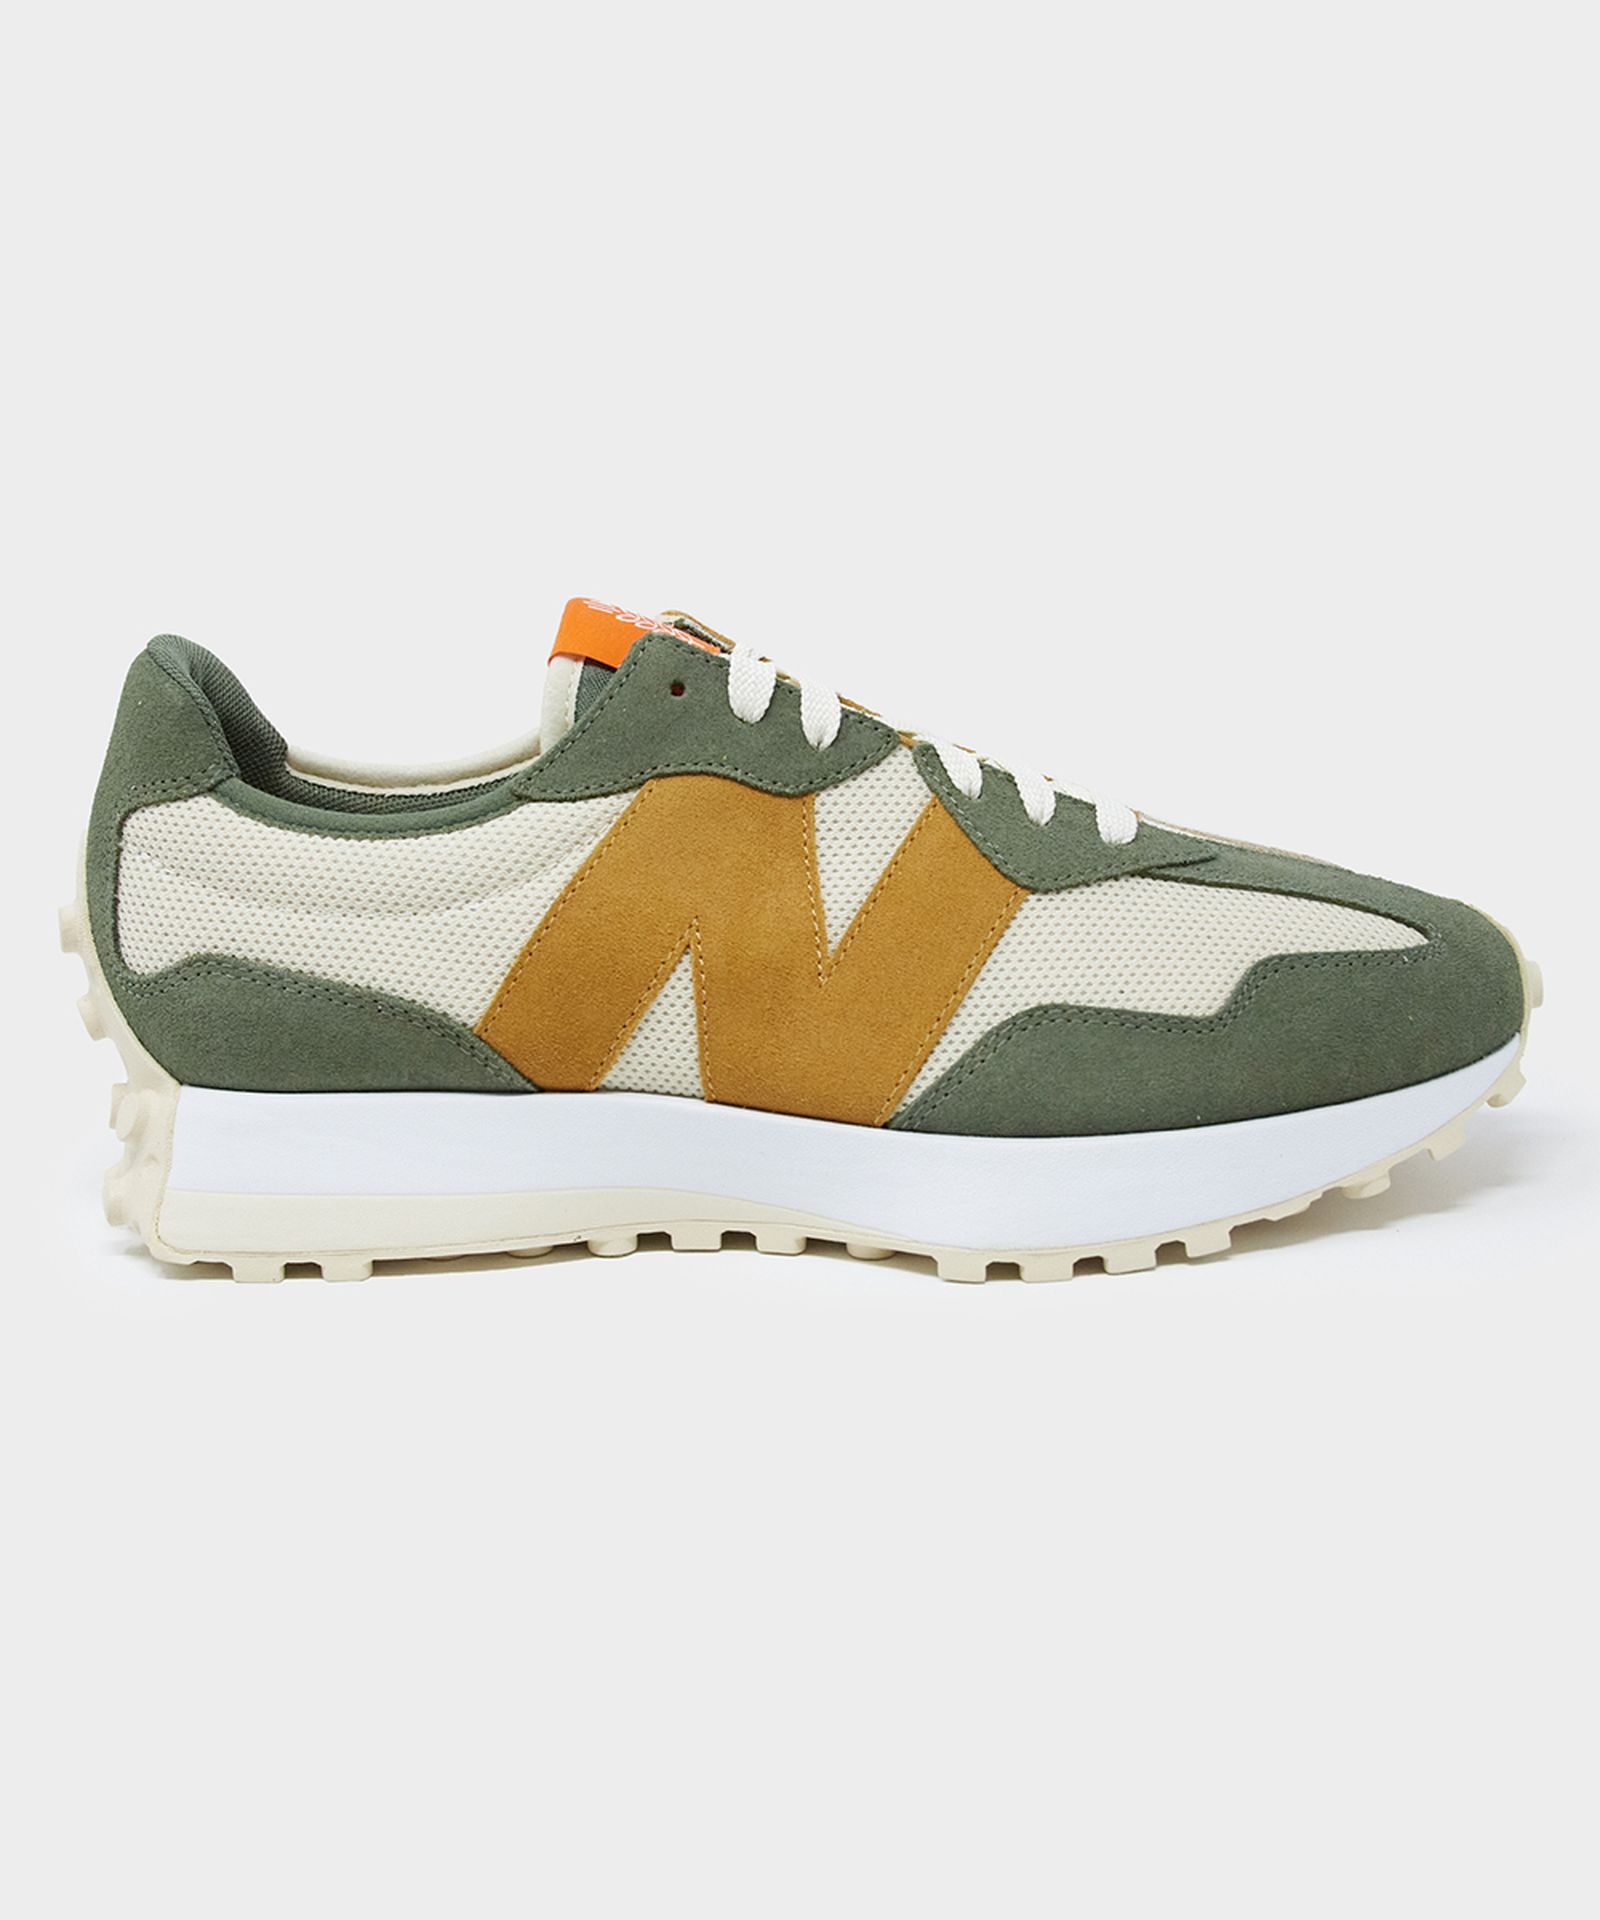 todd-snyder-new-balance-327-farmers-market-release-date-price-1-12